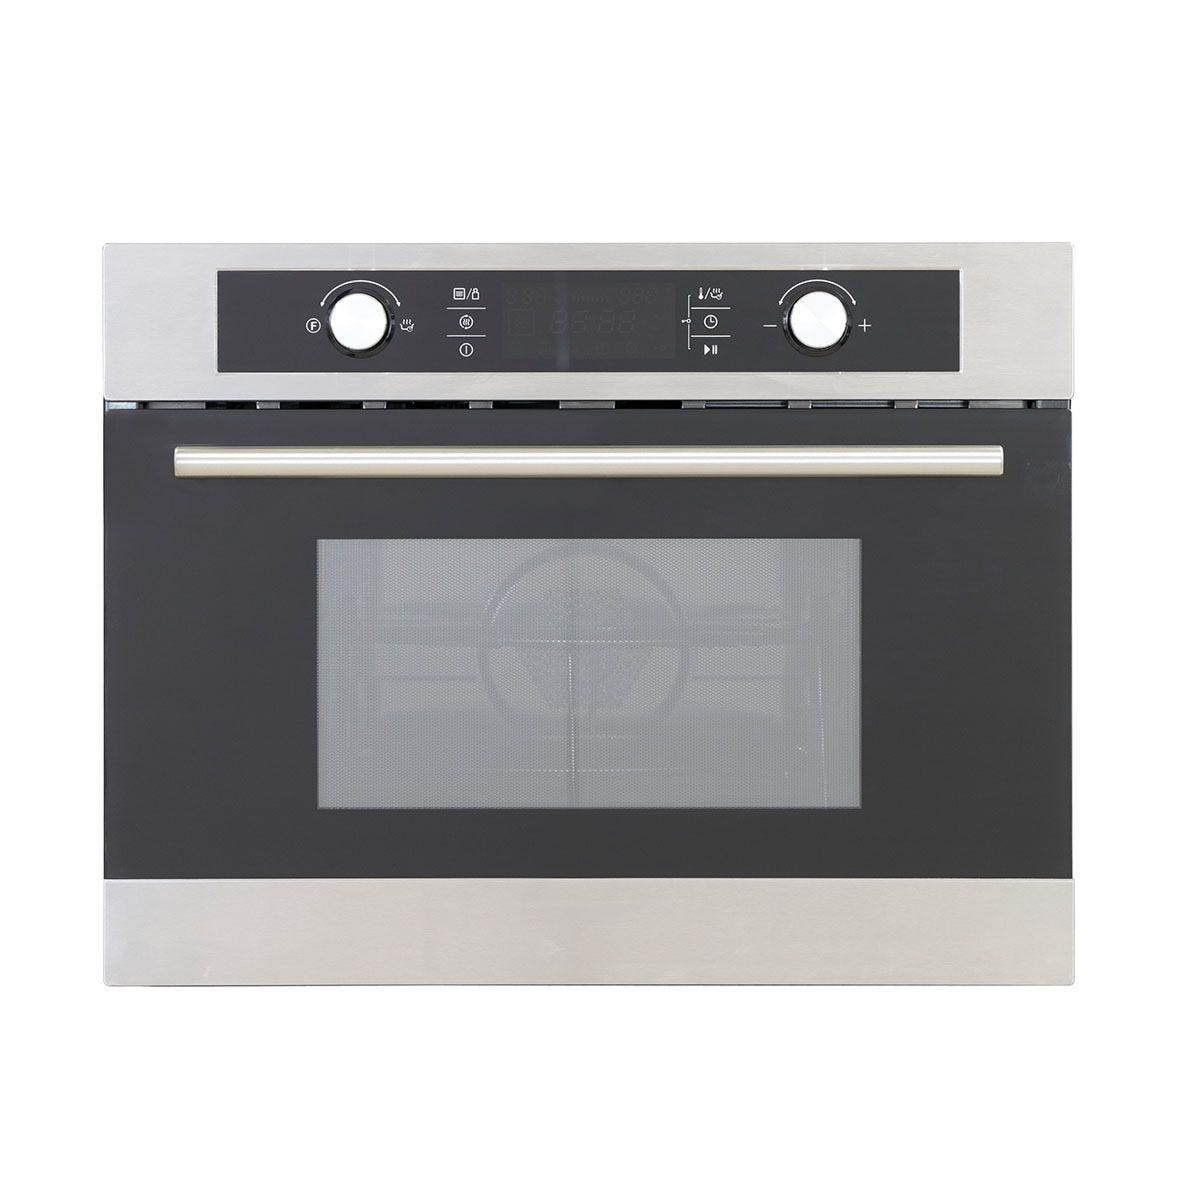 Montpellier MWBIC90044 2400W 44L Built In Combination Microwave - Stainless Steel